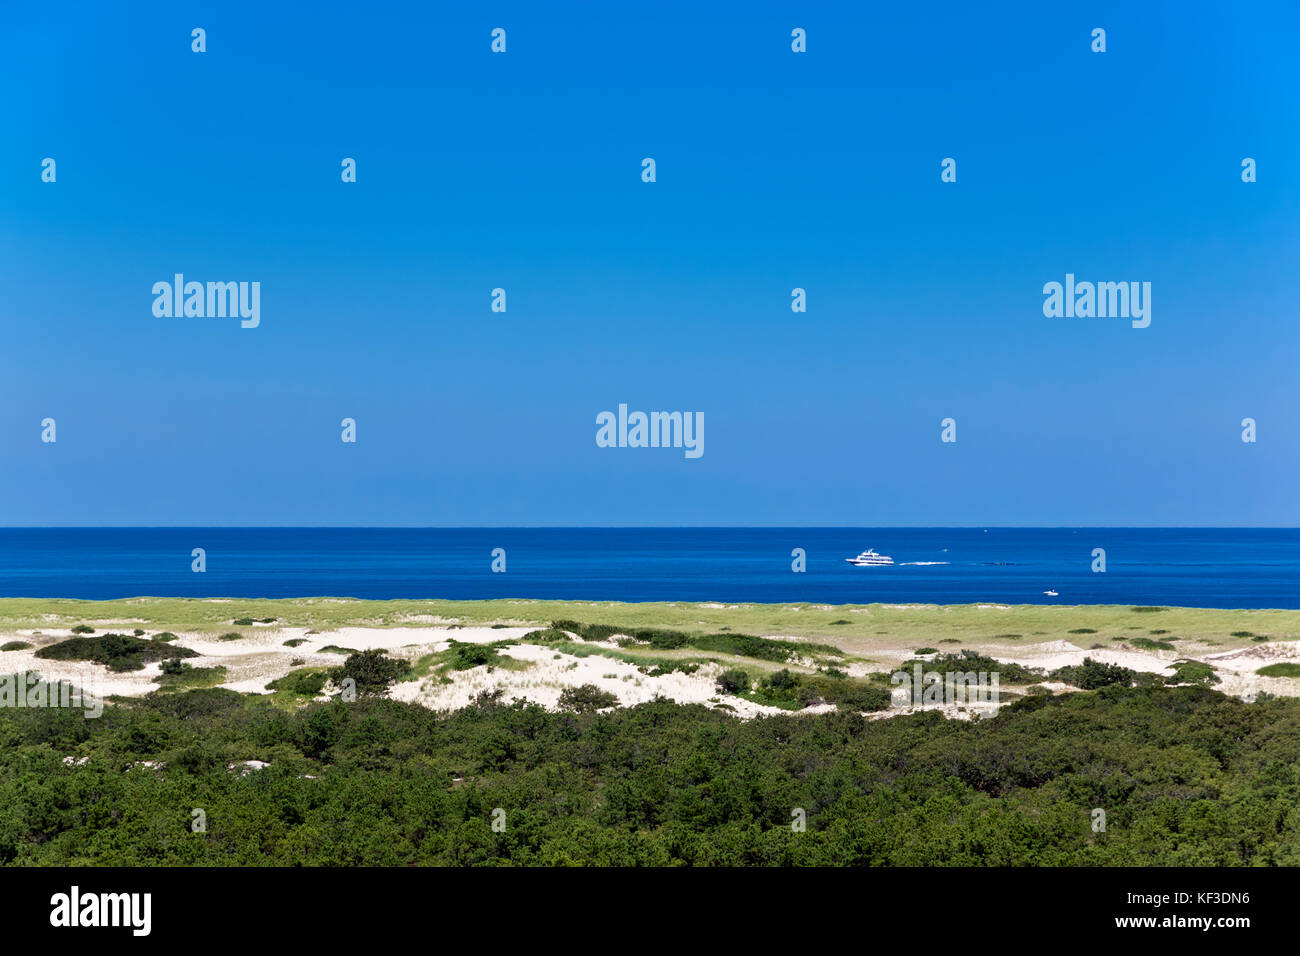 Province Lands at Cape Cod National Seashore. Sand dune vegetation in the foreground & the Atlantic Ocean in - Stock Image